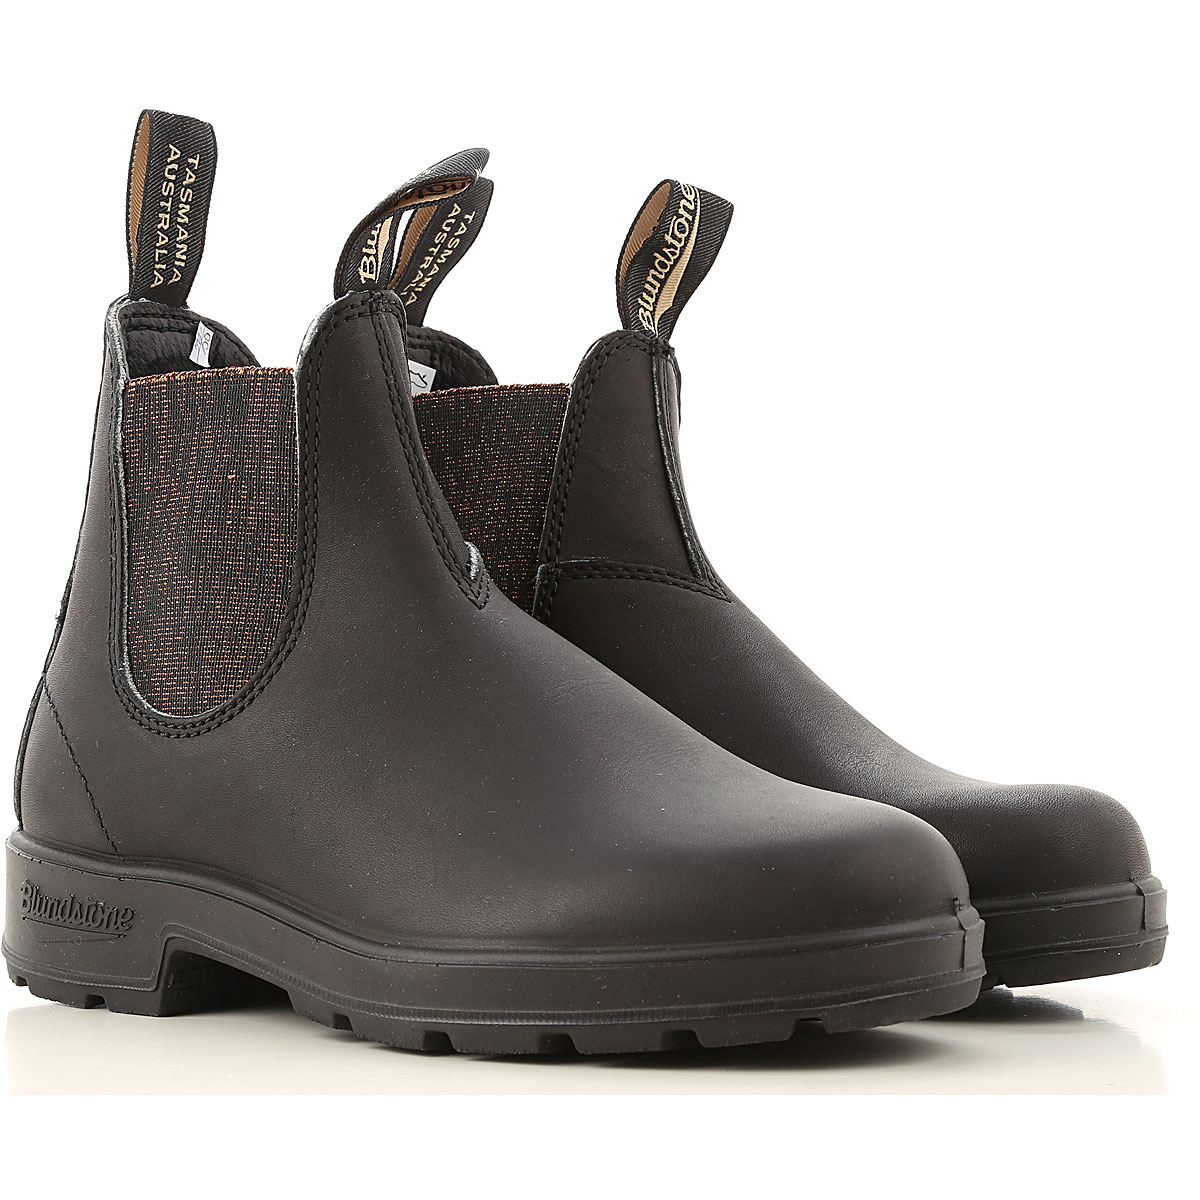 Blundstone Chelsea Boots for Women On Sale, Black, Leather, 2019, AU/UK 5 - US 8 AU/UK 4 - US 7 AU/UK 2 - US 5 AU/UK 3 - US 6 AU/UK 7 - US 10